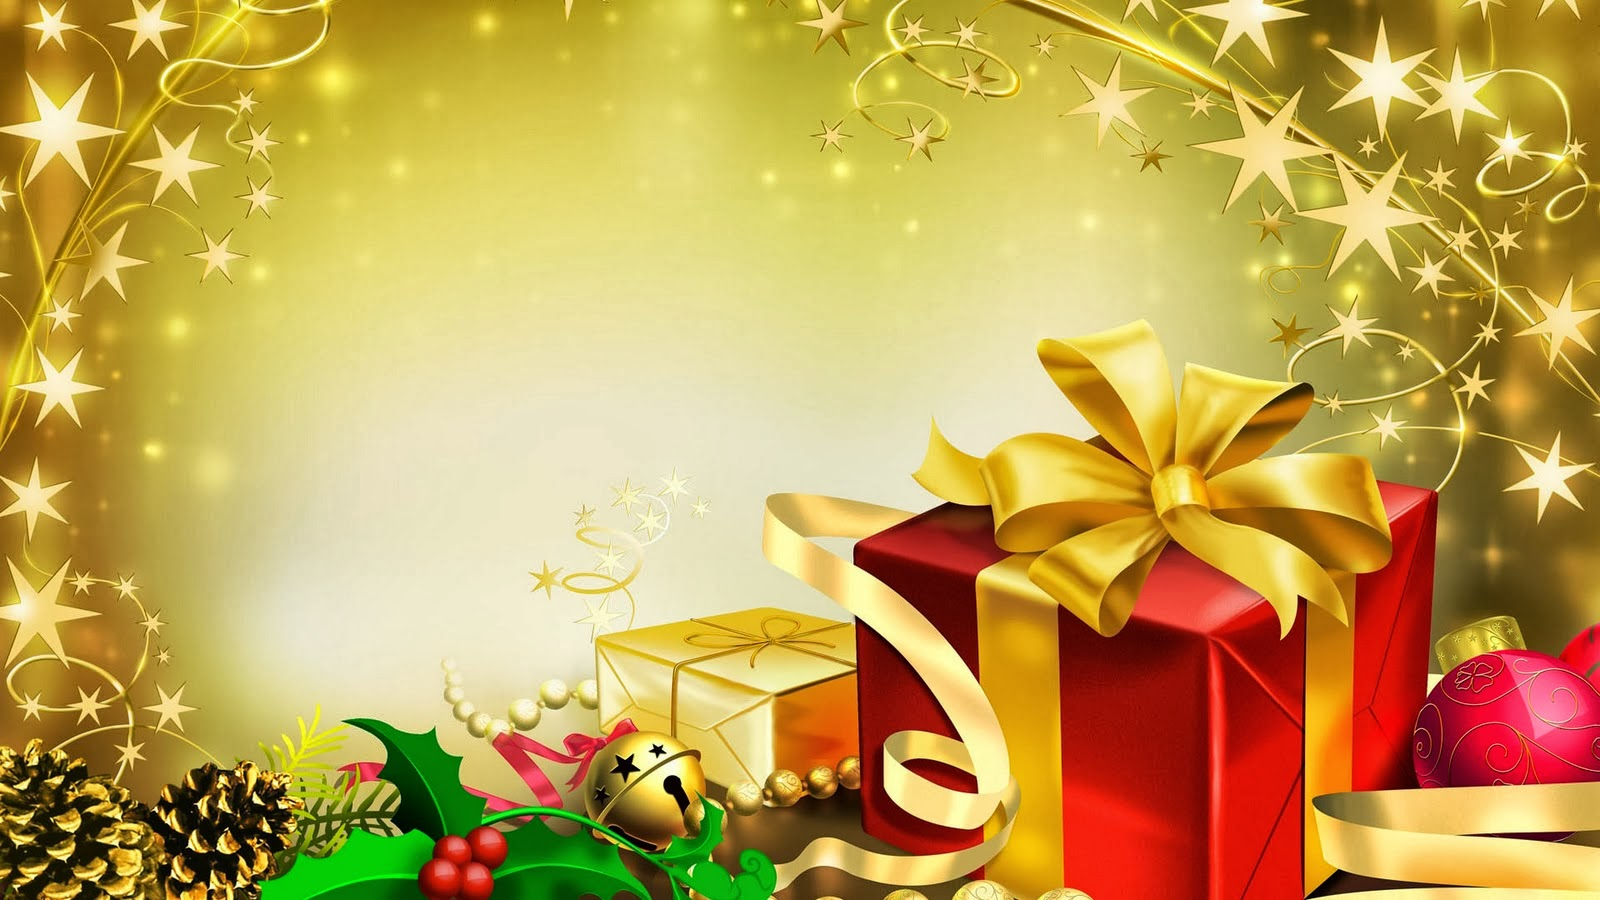 Hd Christmas Wallpapers 1080p Christmas hd desktop wallpaper 1600x900